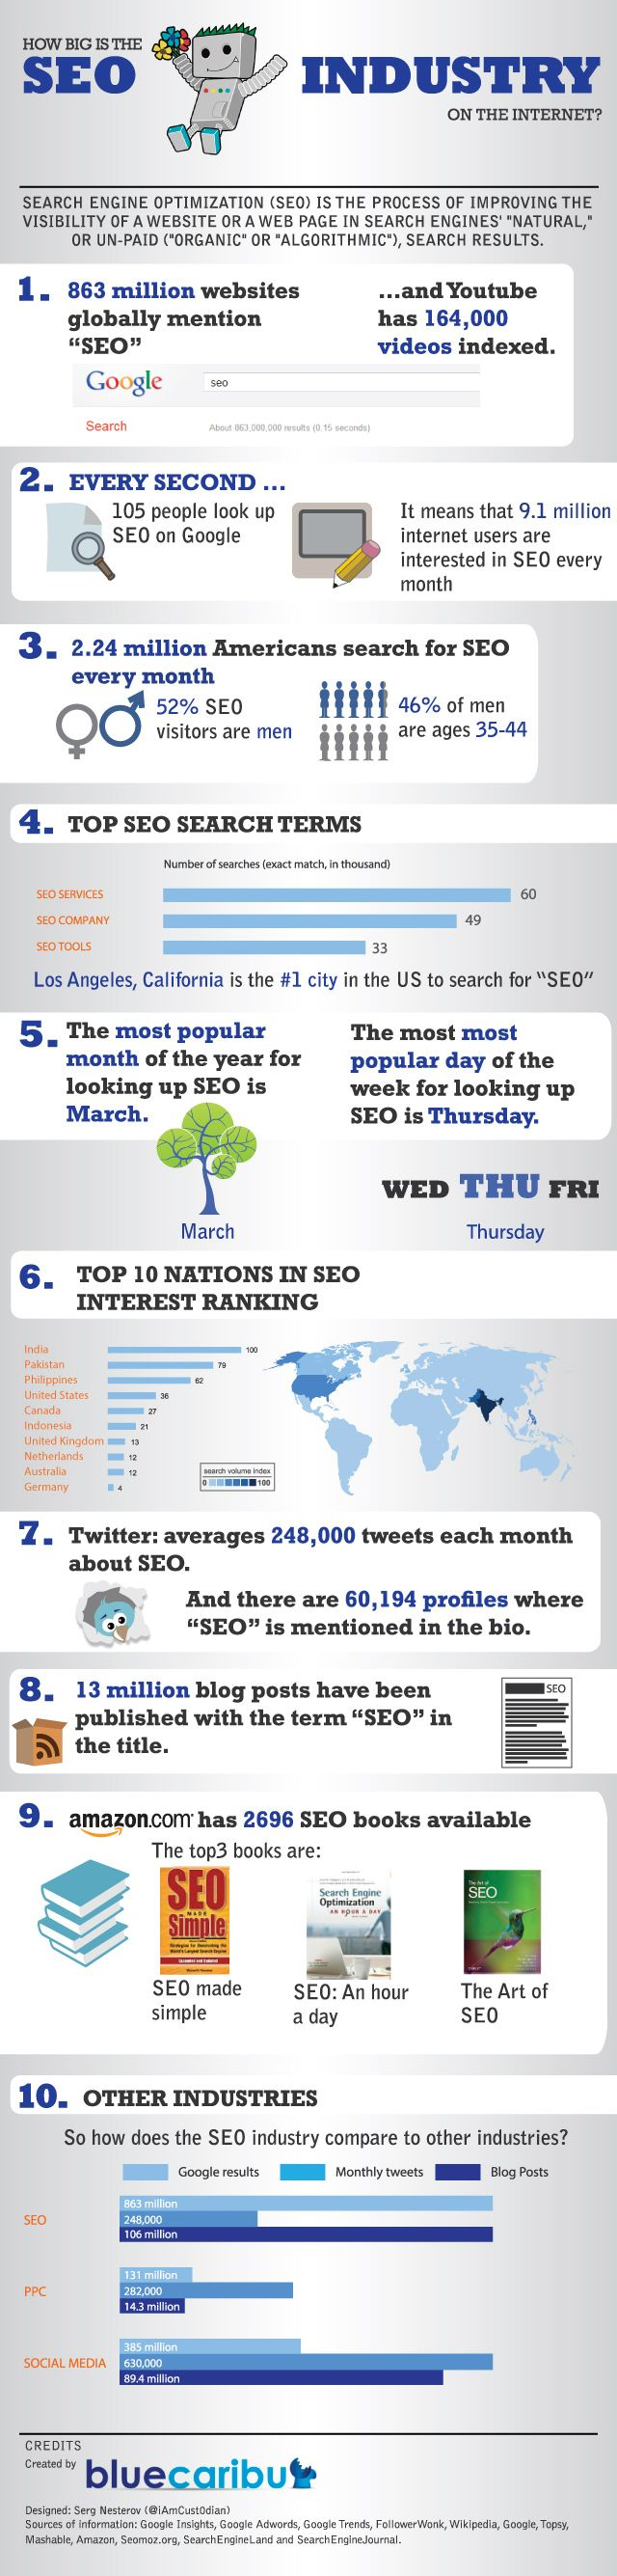 How Big is the SEO Industry?